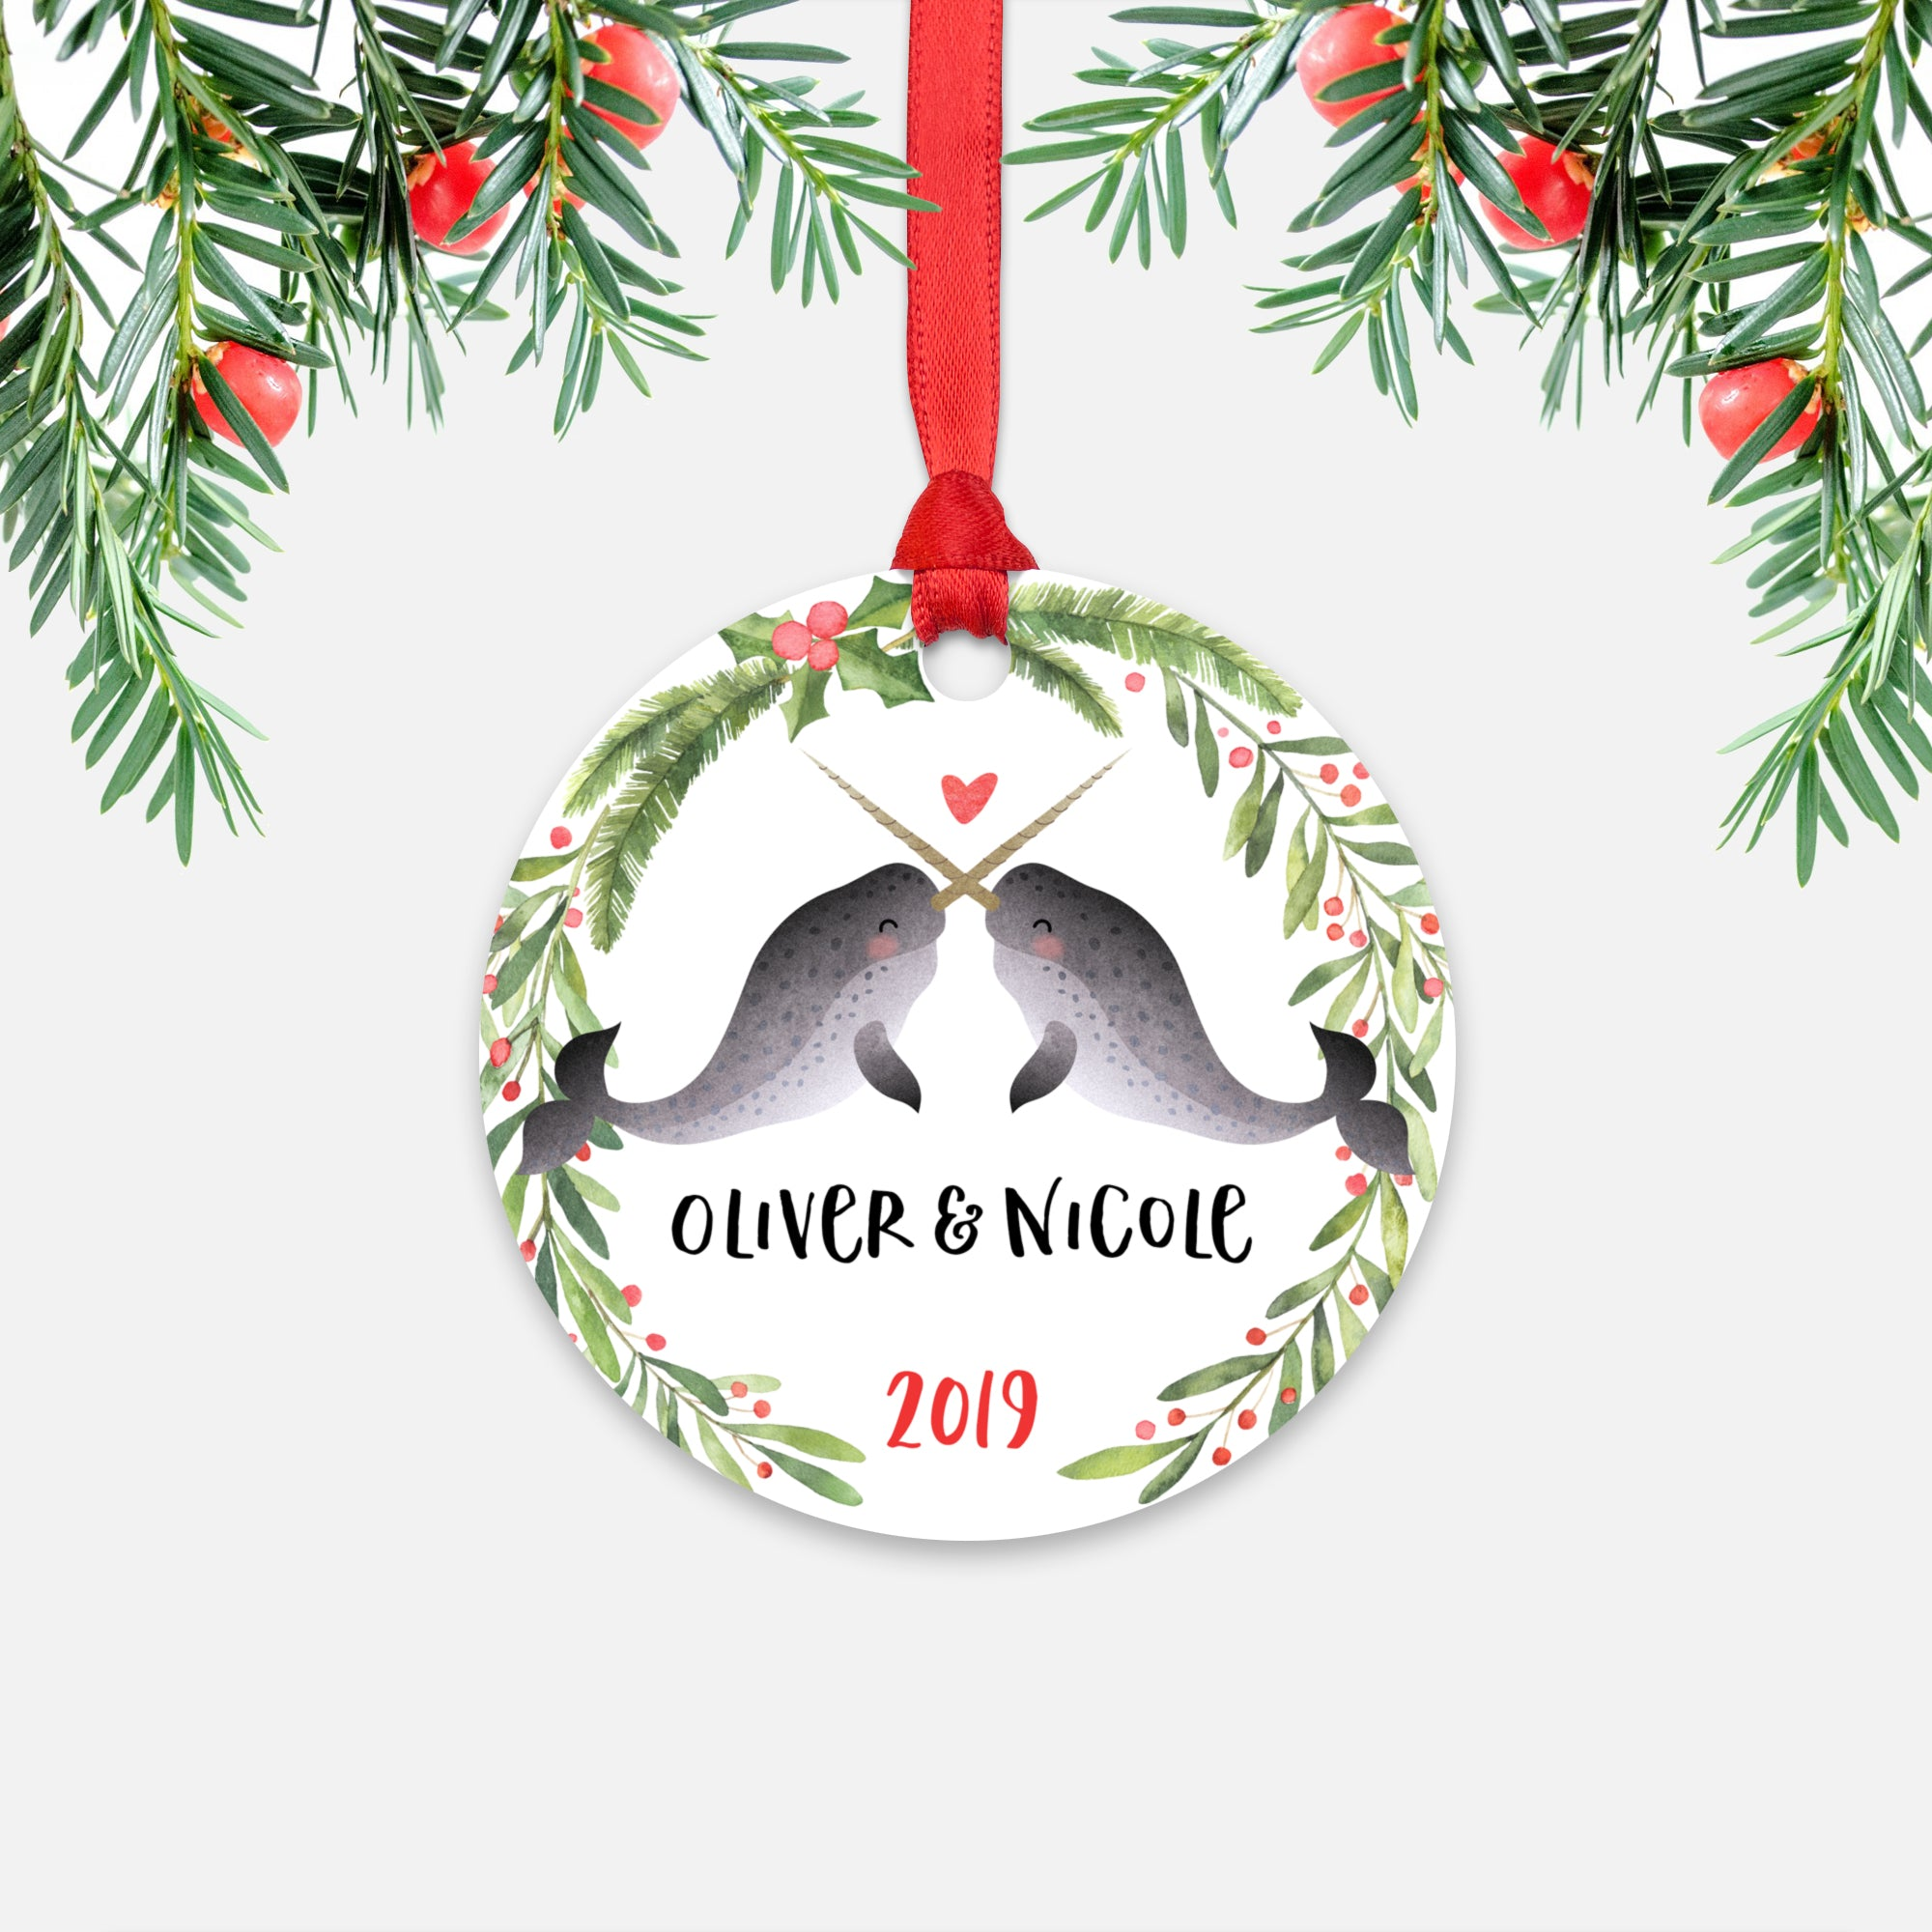 Narwhal Couple Personalized Christmas Ornament - Holidays Custom Gift for Animal Lover Wedding Engagement Newlyweds Wife Husband Boyfriend Girlfriend - Round Aluminum - Red Ribbon Hanging in Tree - by Happy Cat Prints